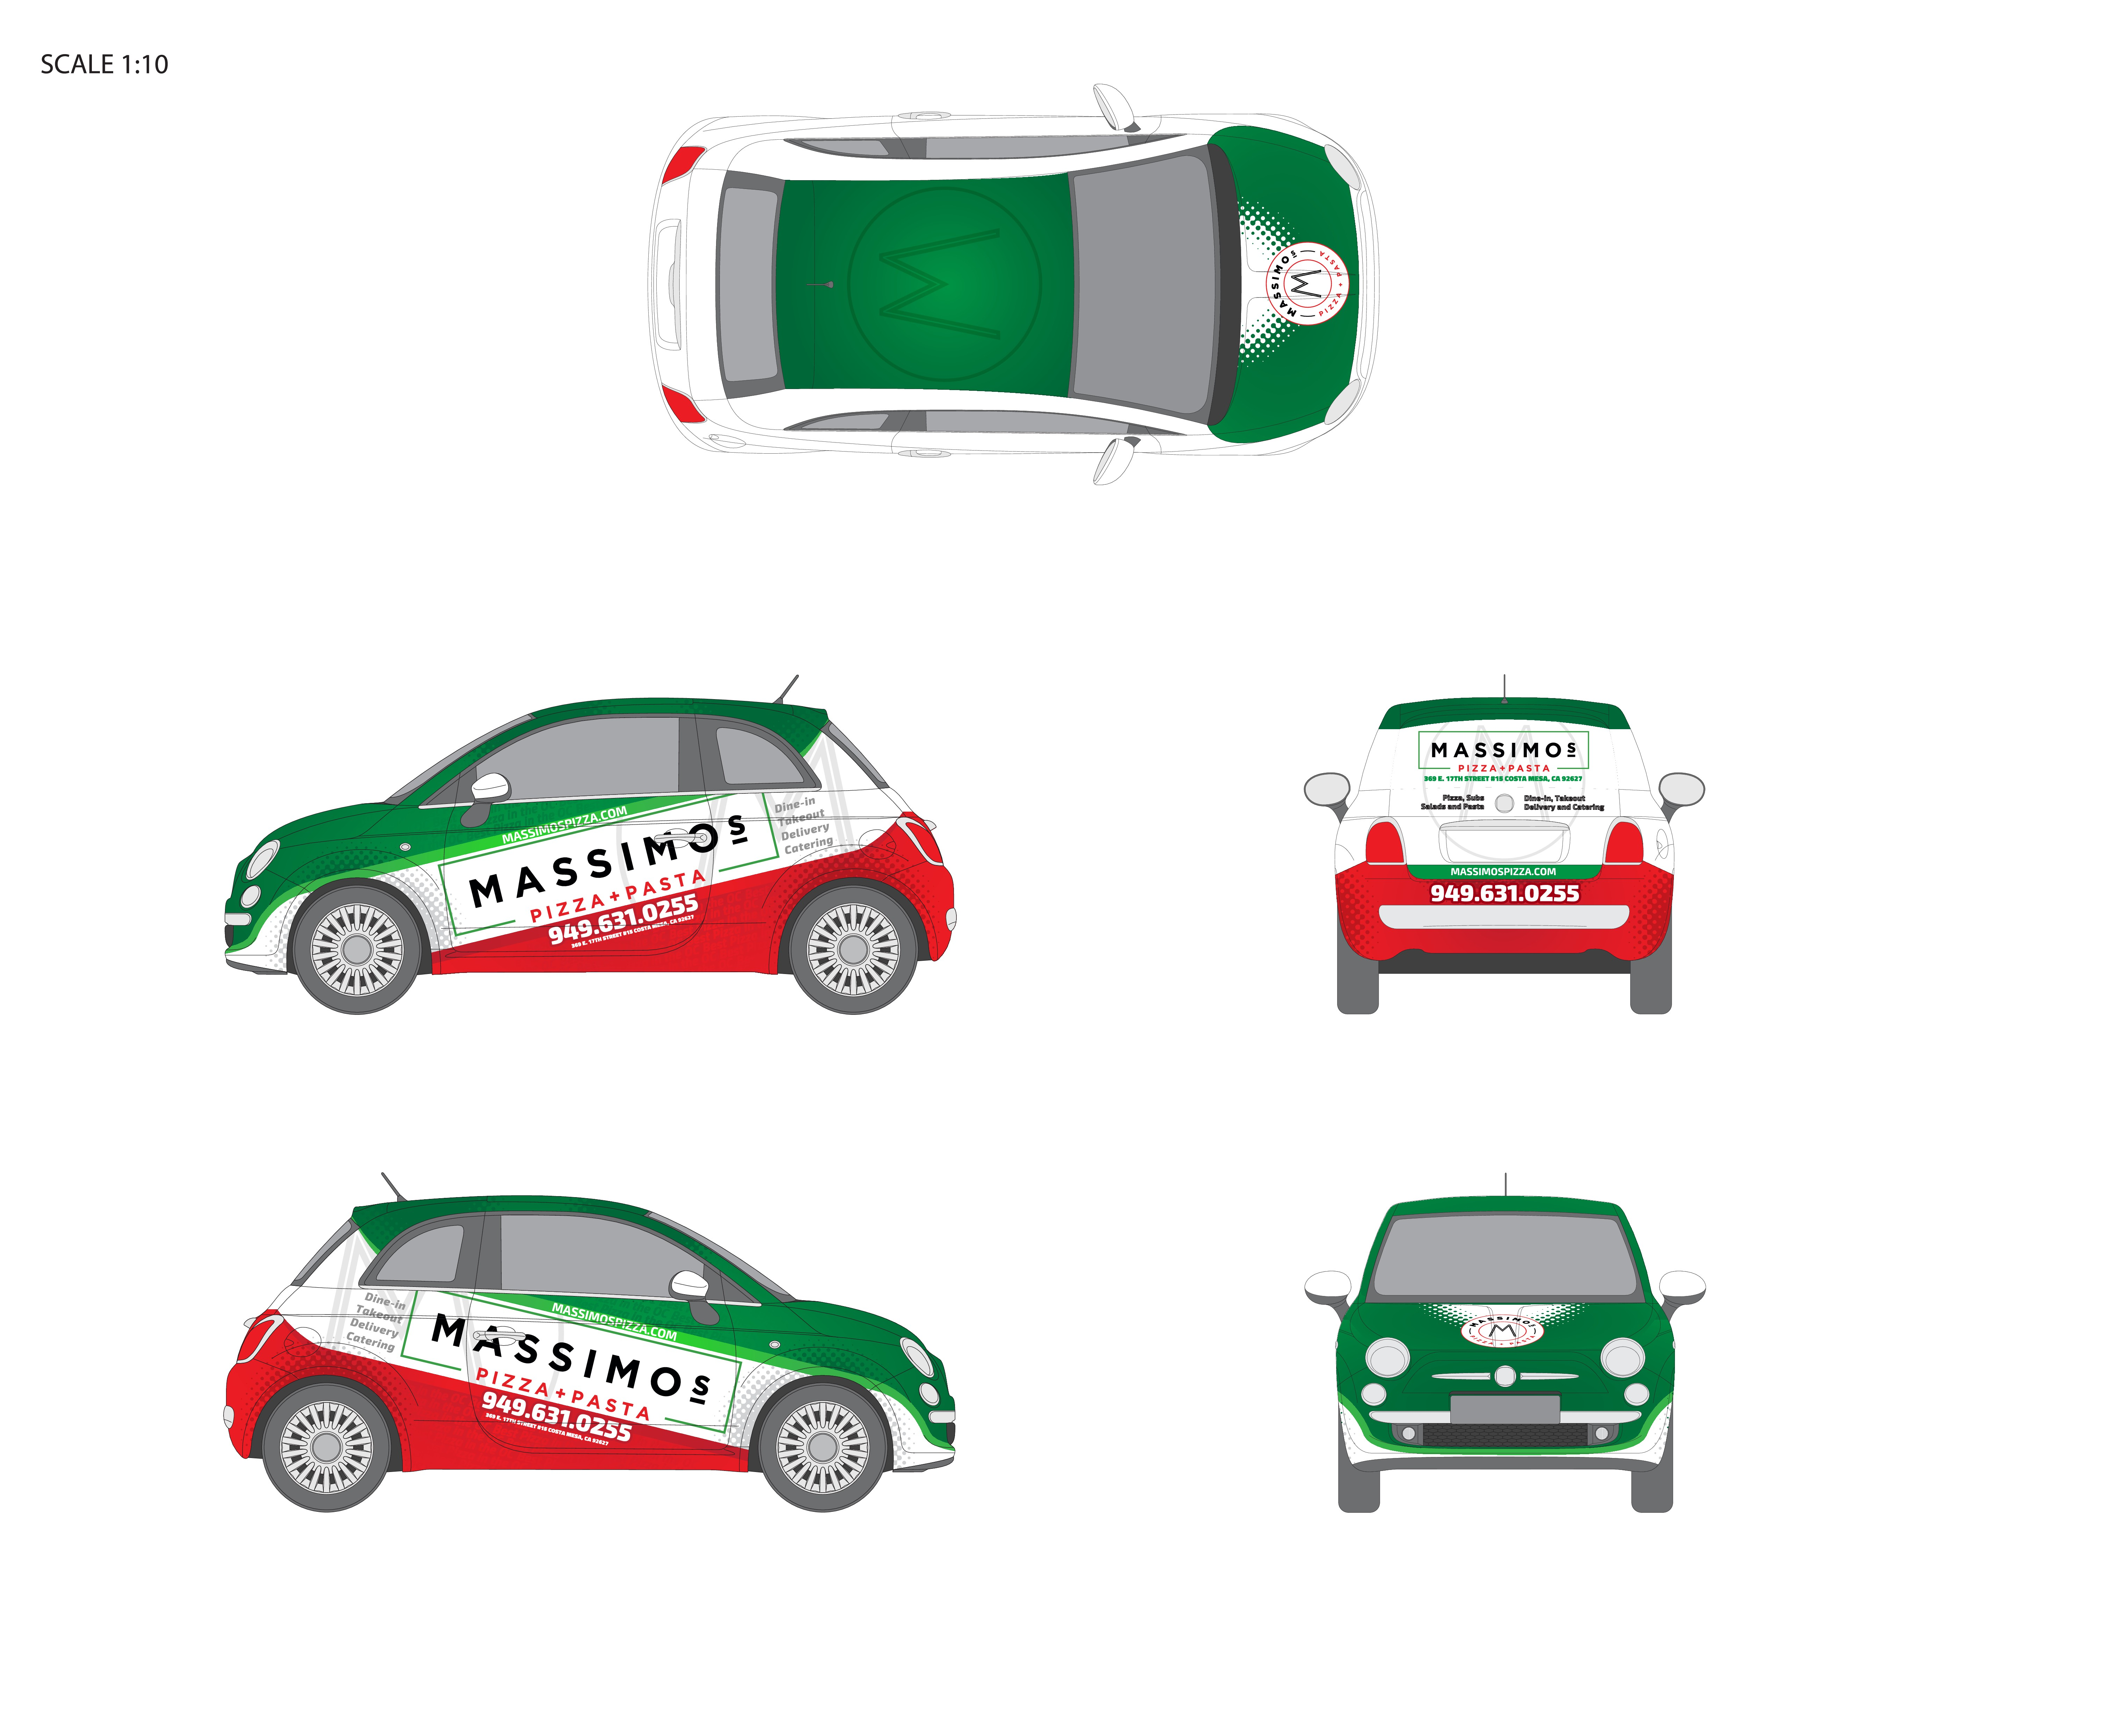 Create a cool wrap design for our new pizza delivery car.